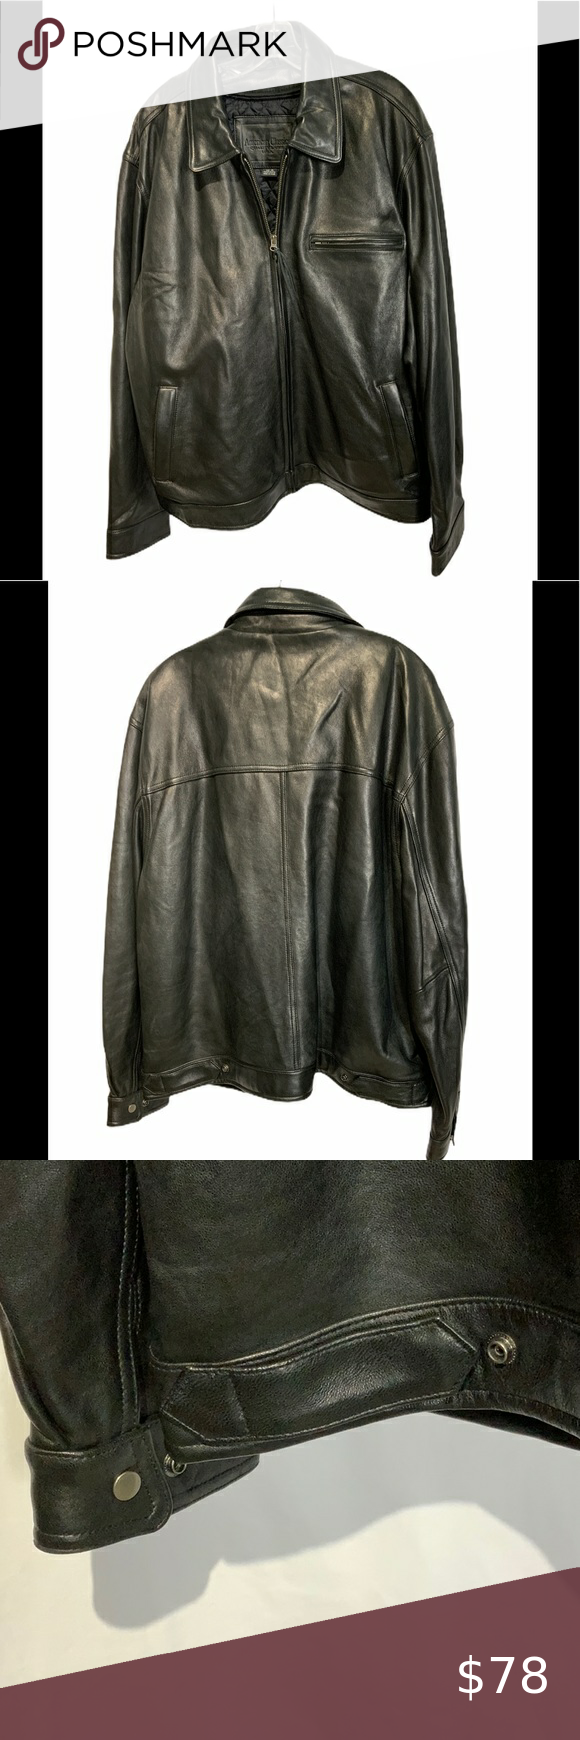 American Classic Quality Label 100 Leather Jacket American Classic Quality Label Even The Label Leather Jacket Classic Leather Jacket Leather Jacket Zipper